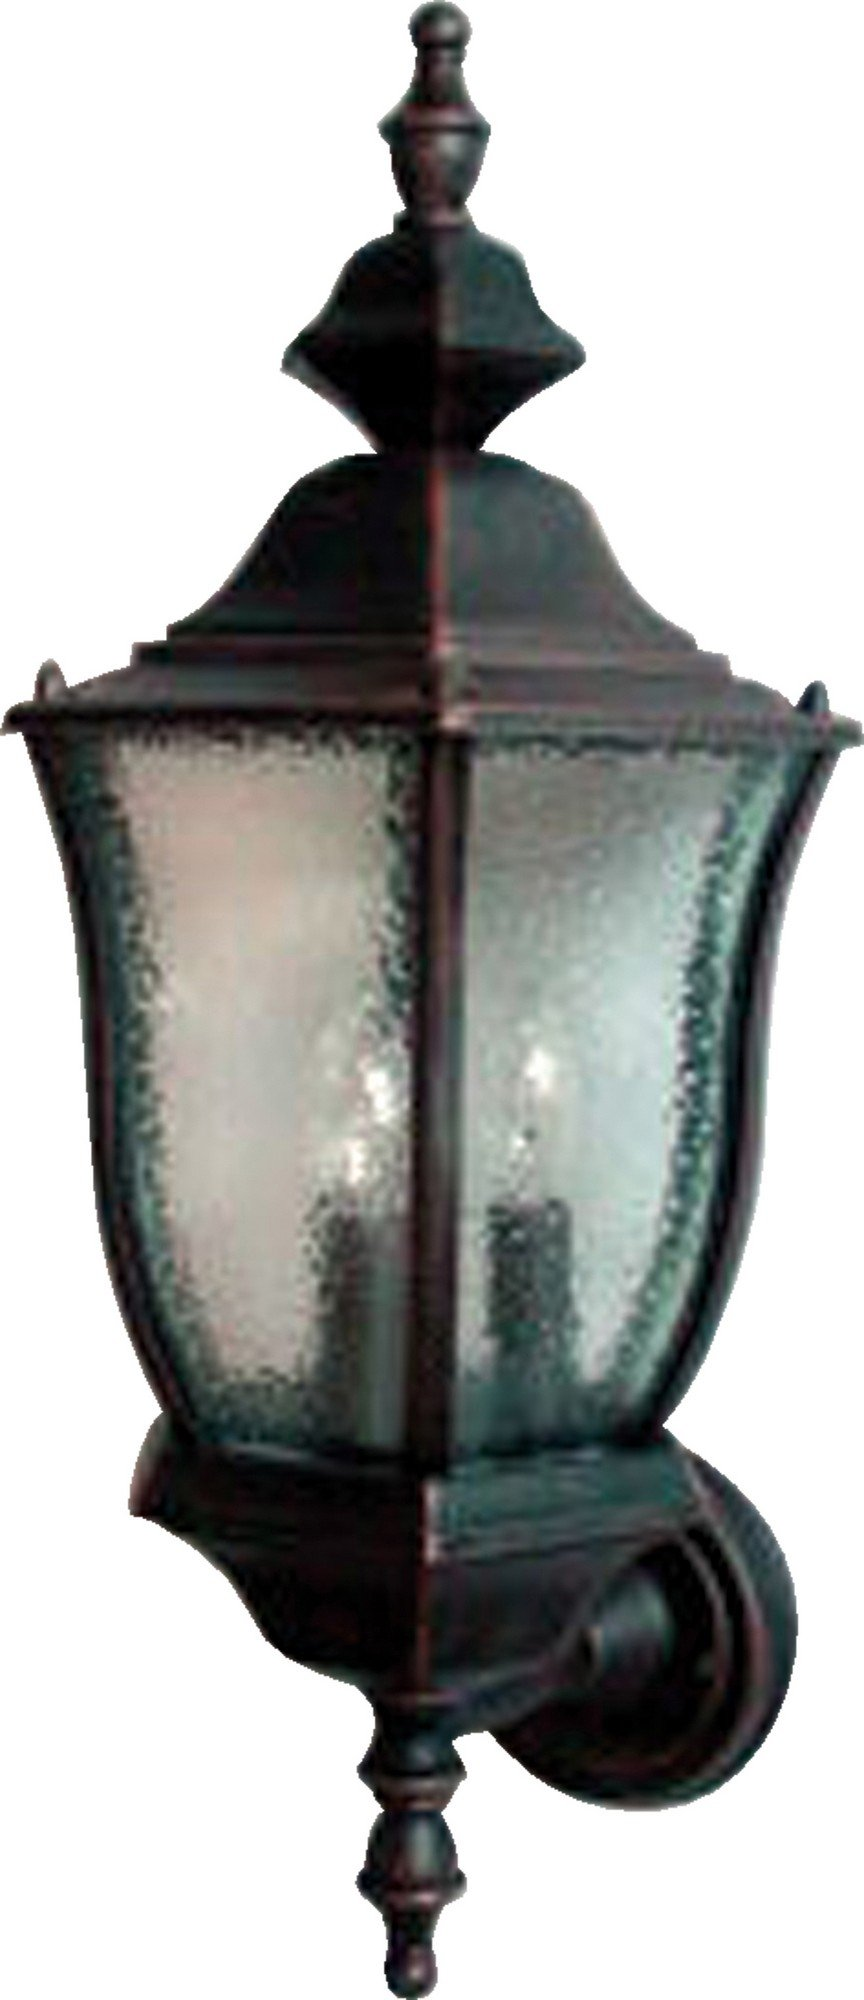 Maxim 1014RP Madrona Cast 3-Light Outdoor Wall Lantern, Rust Patina Finish, Seedy Glass, CA Incandescent Incandescent Bulb , 60W Max., Dry Safety Rating, Standard Dimmable, Frosted Glass Shade Material, Rated Lumens